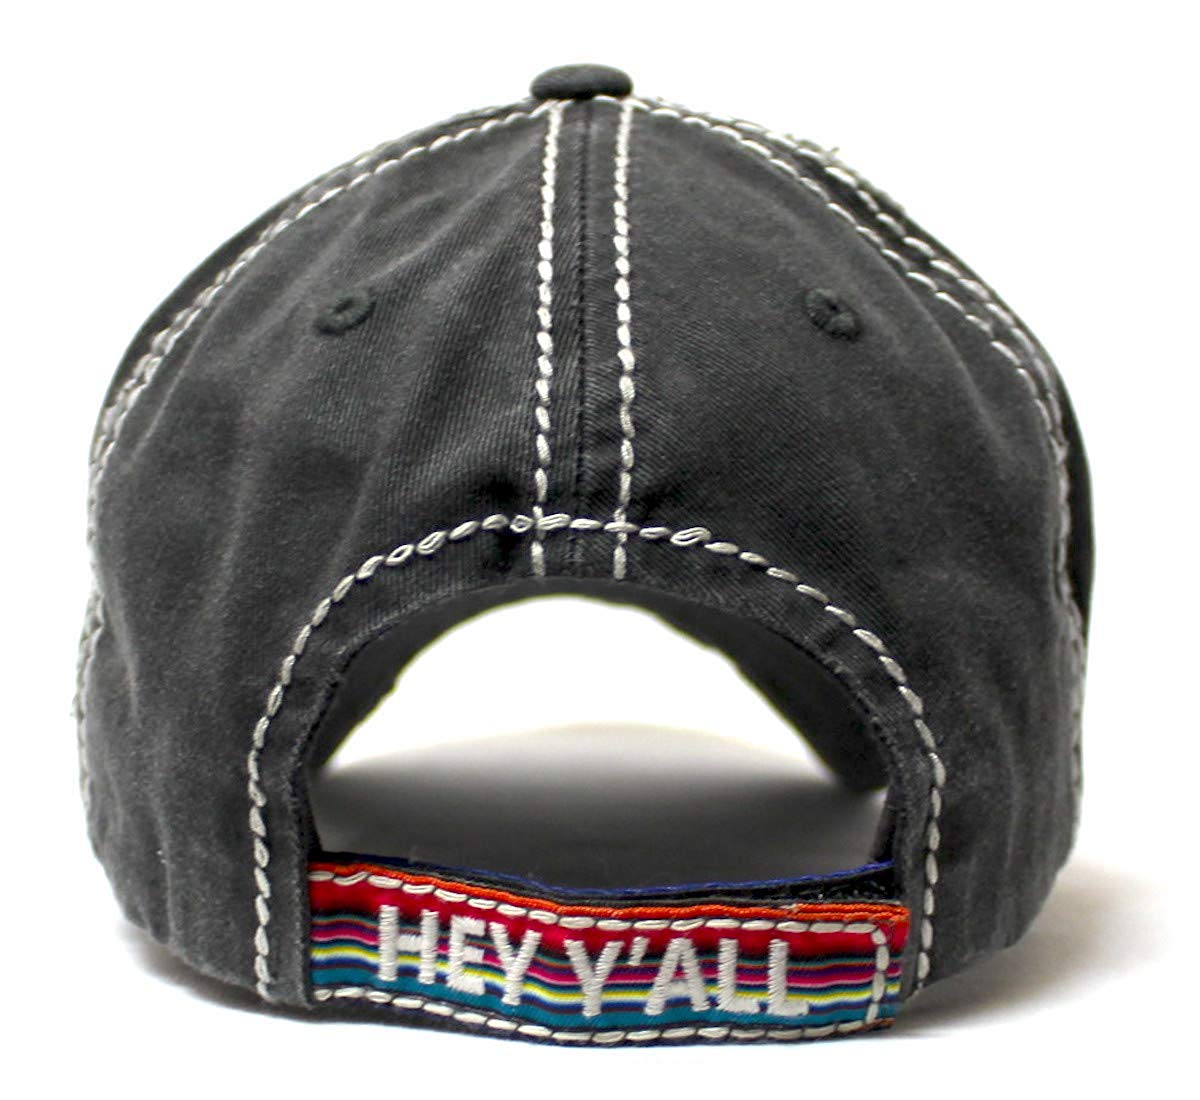 Hey Y'all Serape Monogram Embroidery Adjustable Hat, Vintage Black - Caps 'N Vintage